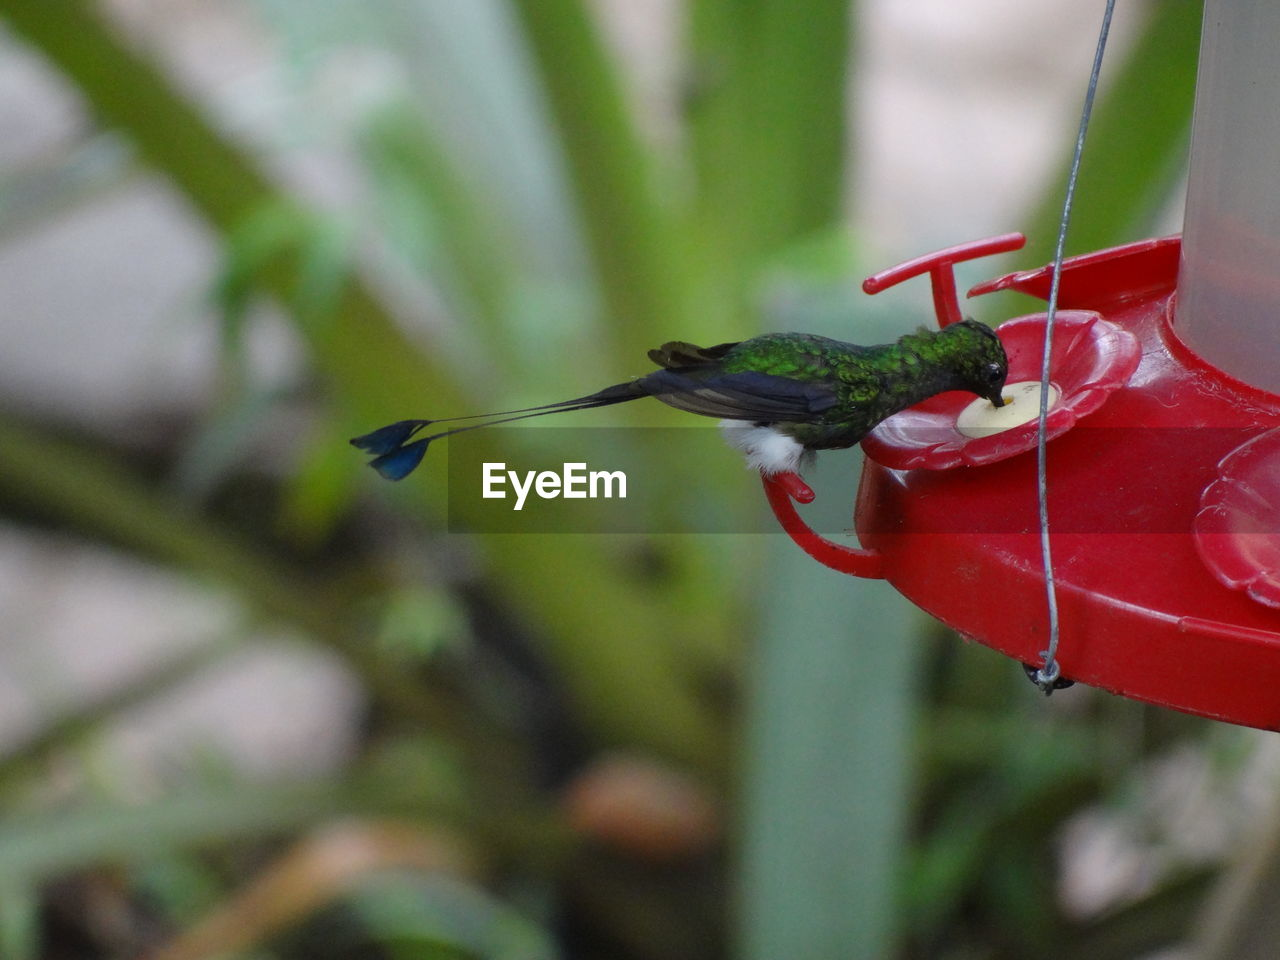 animal themes, animal, animals in the wild, one animal, animal wildlife, focus on foreground, bird, hummingbird, close-up, vertebrate, red, day, invertebrate, perching, no people, nature, plant, food, insect, green color